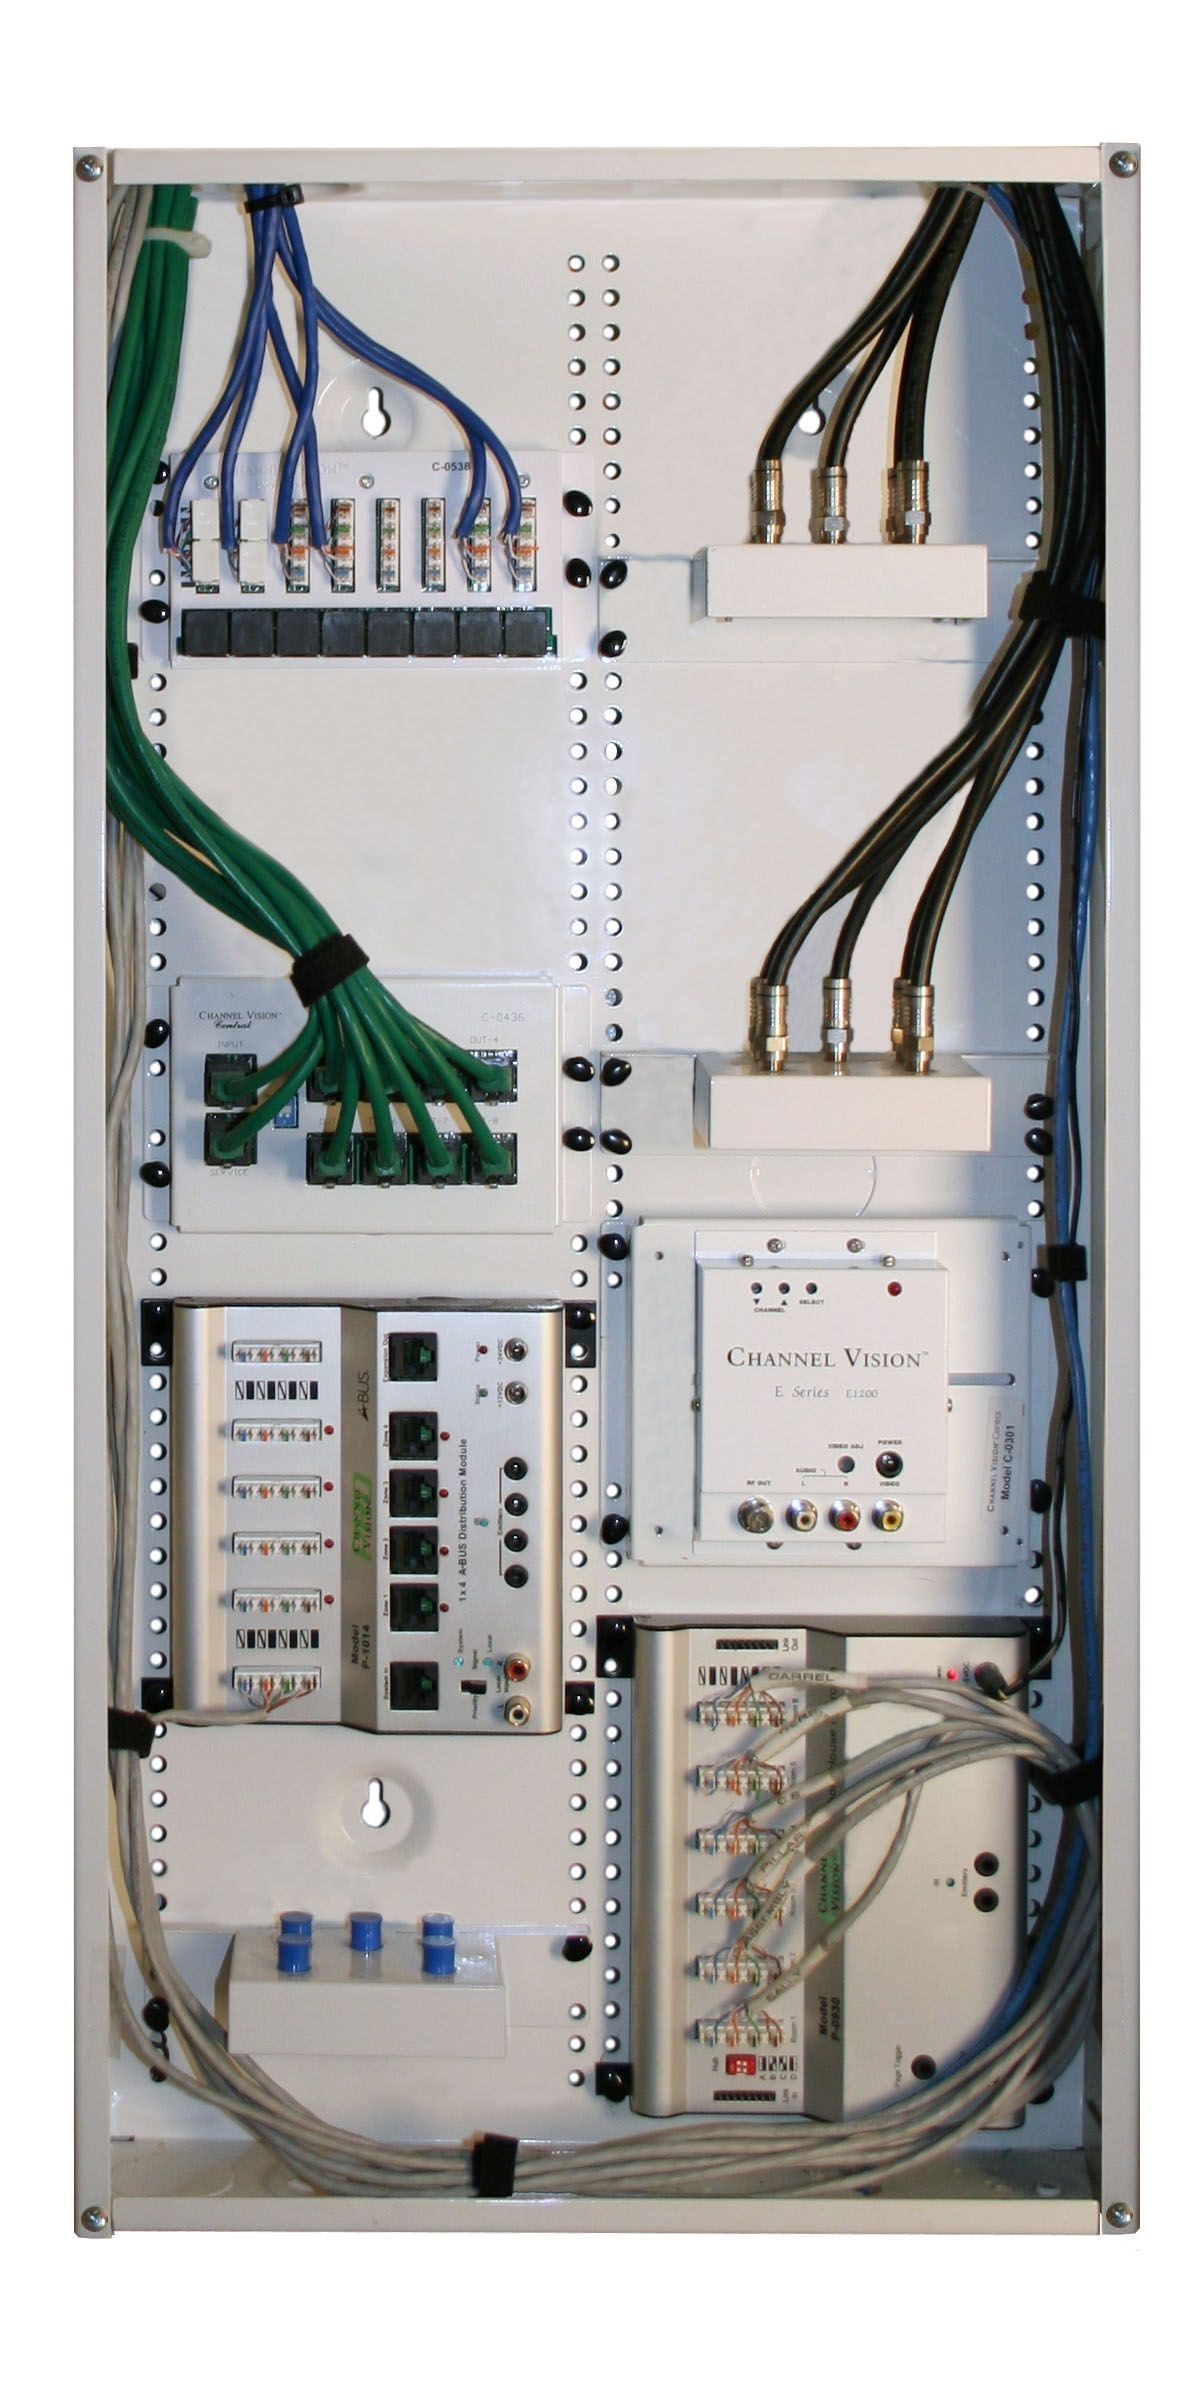 hight resolution of structured wiring cable distribution panel for home tv internet audio and communications